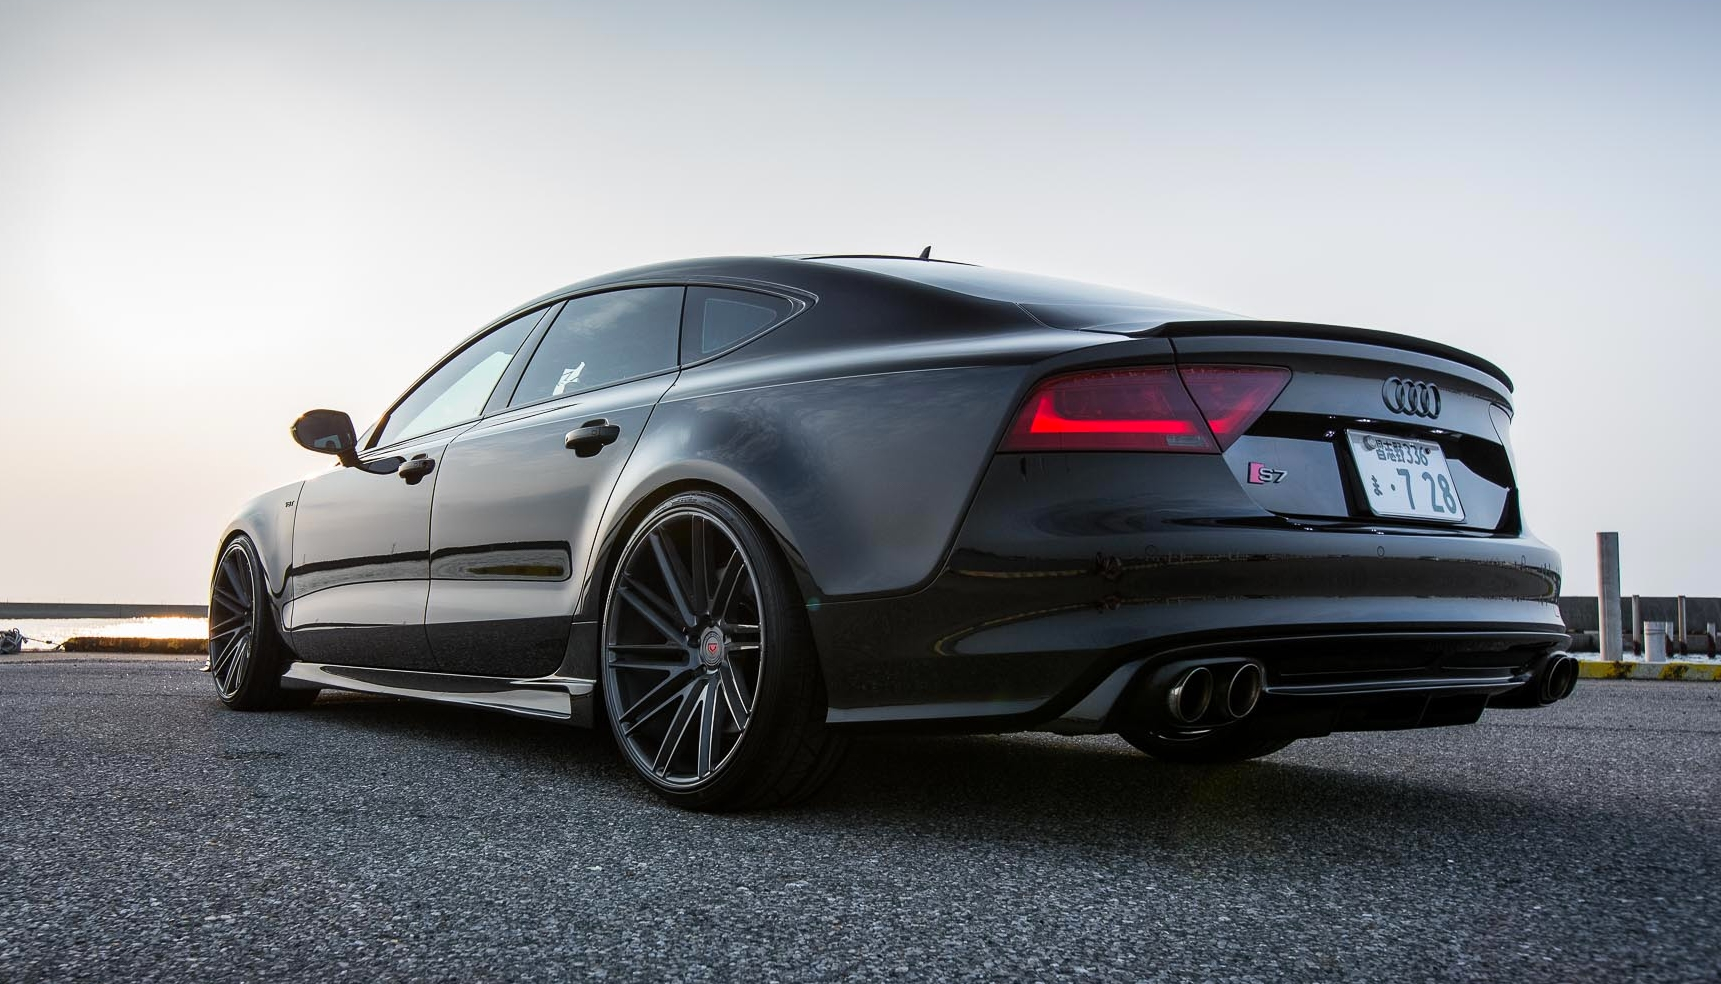 Hamana Audi S7 on Vossen Wheels!